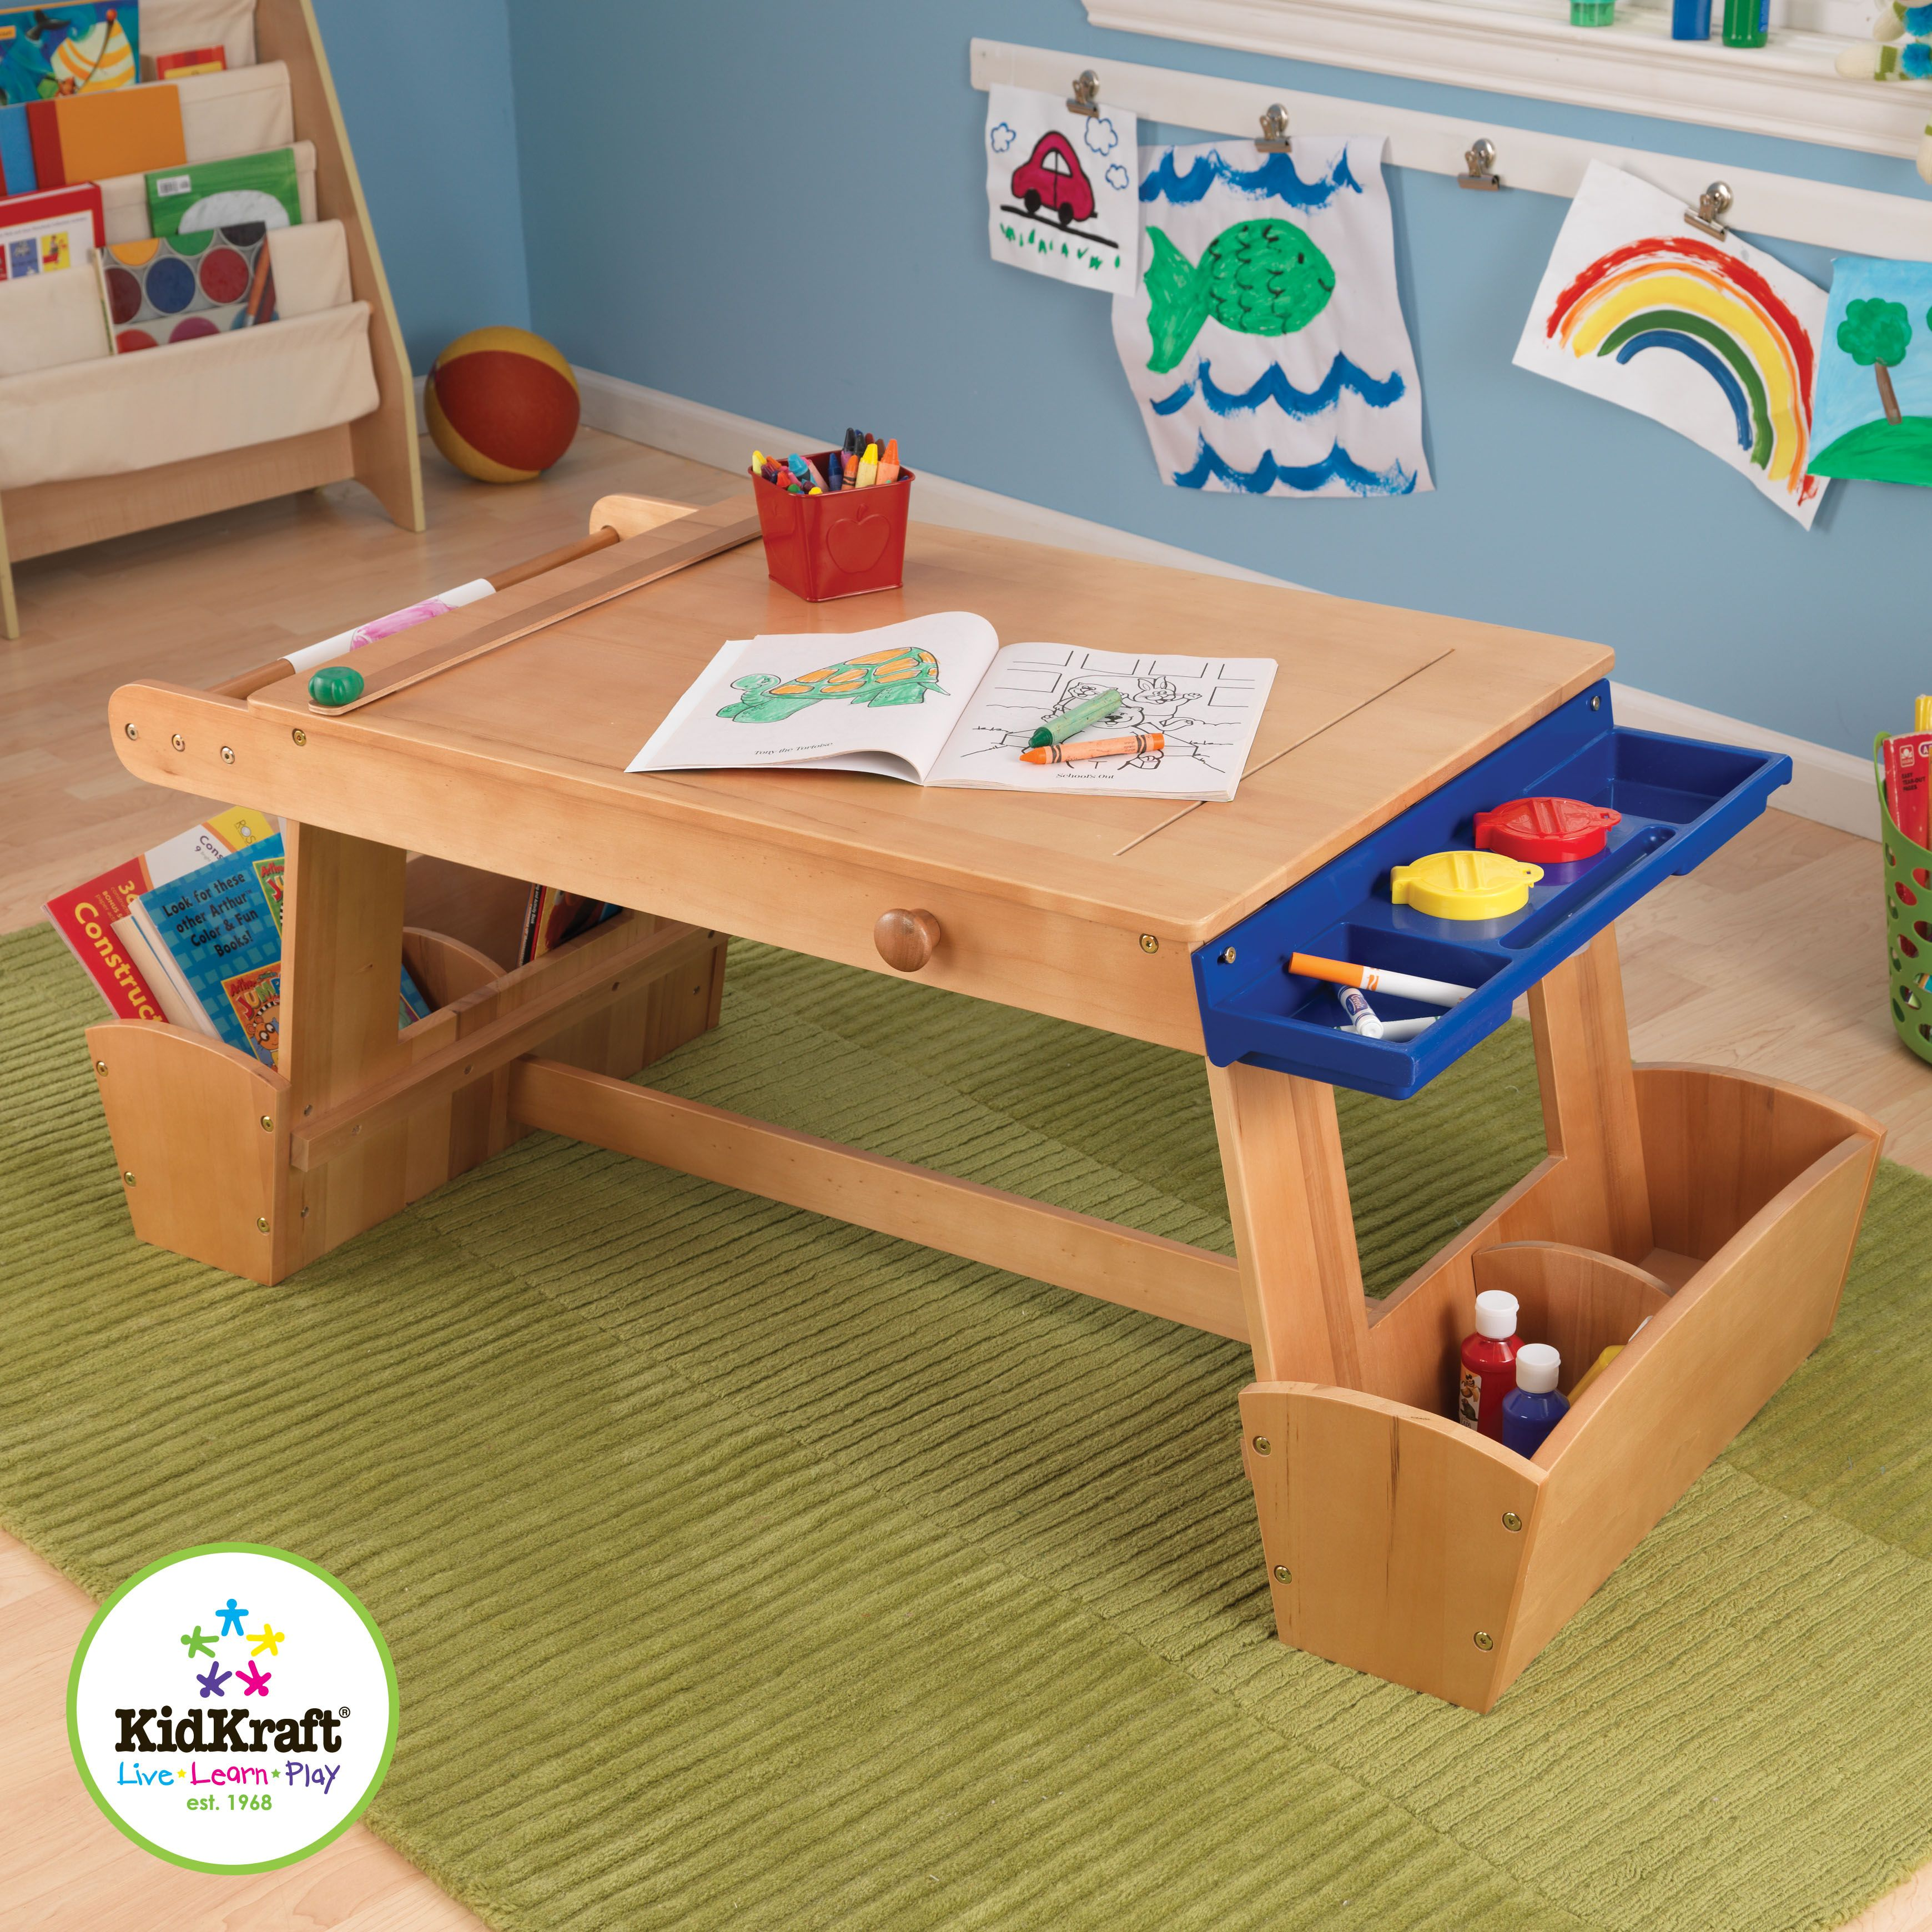 KidKraft Art Desk with Drying Rack and Storage by KidKraft